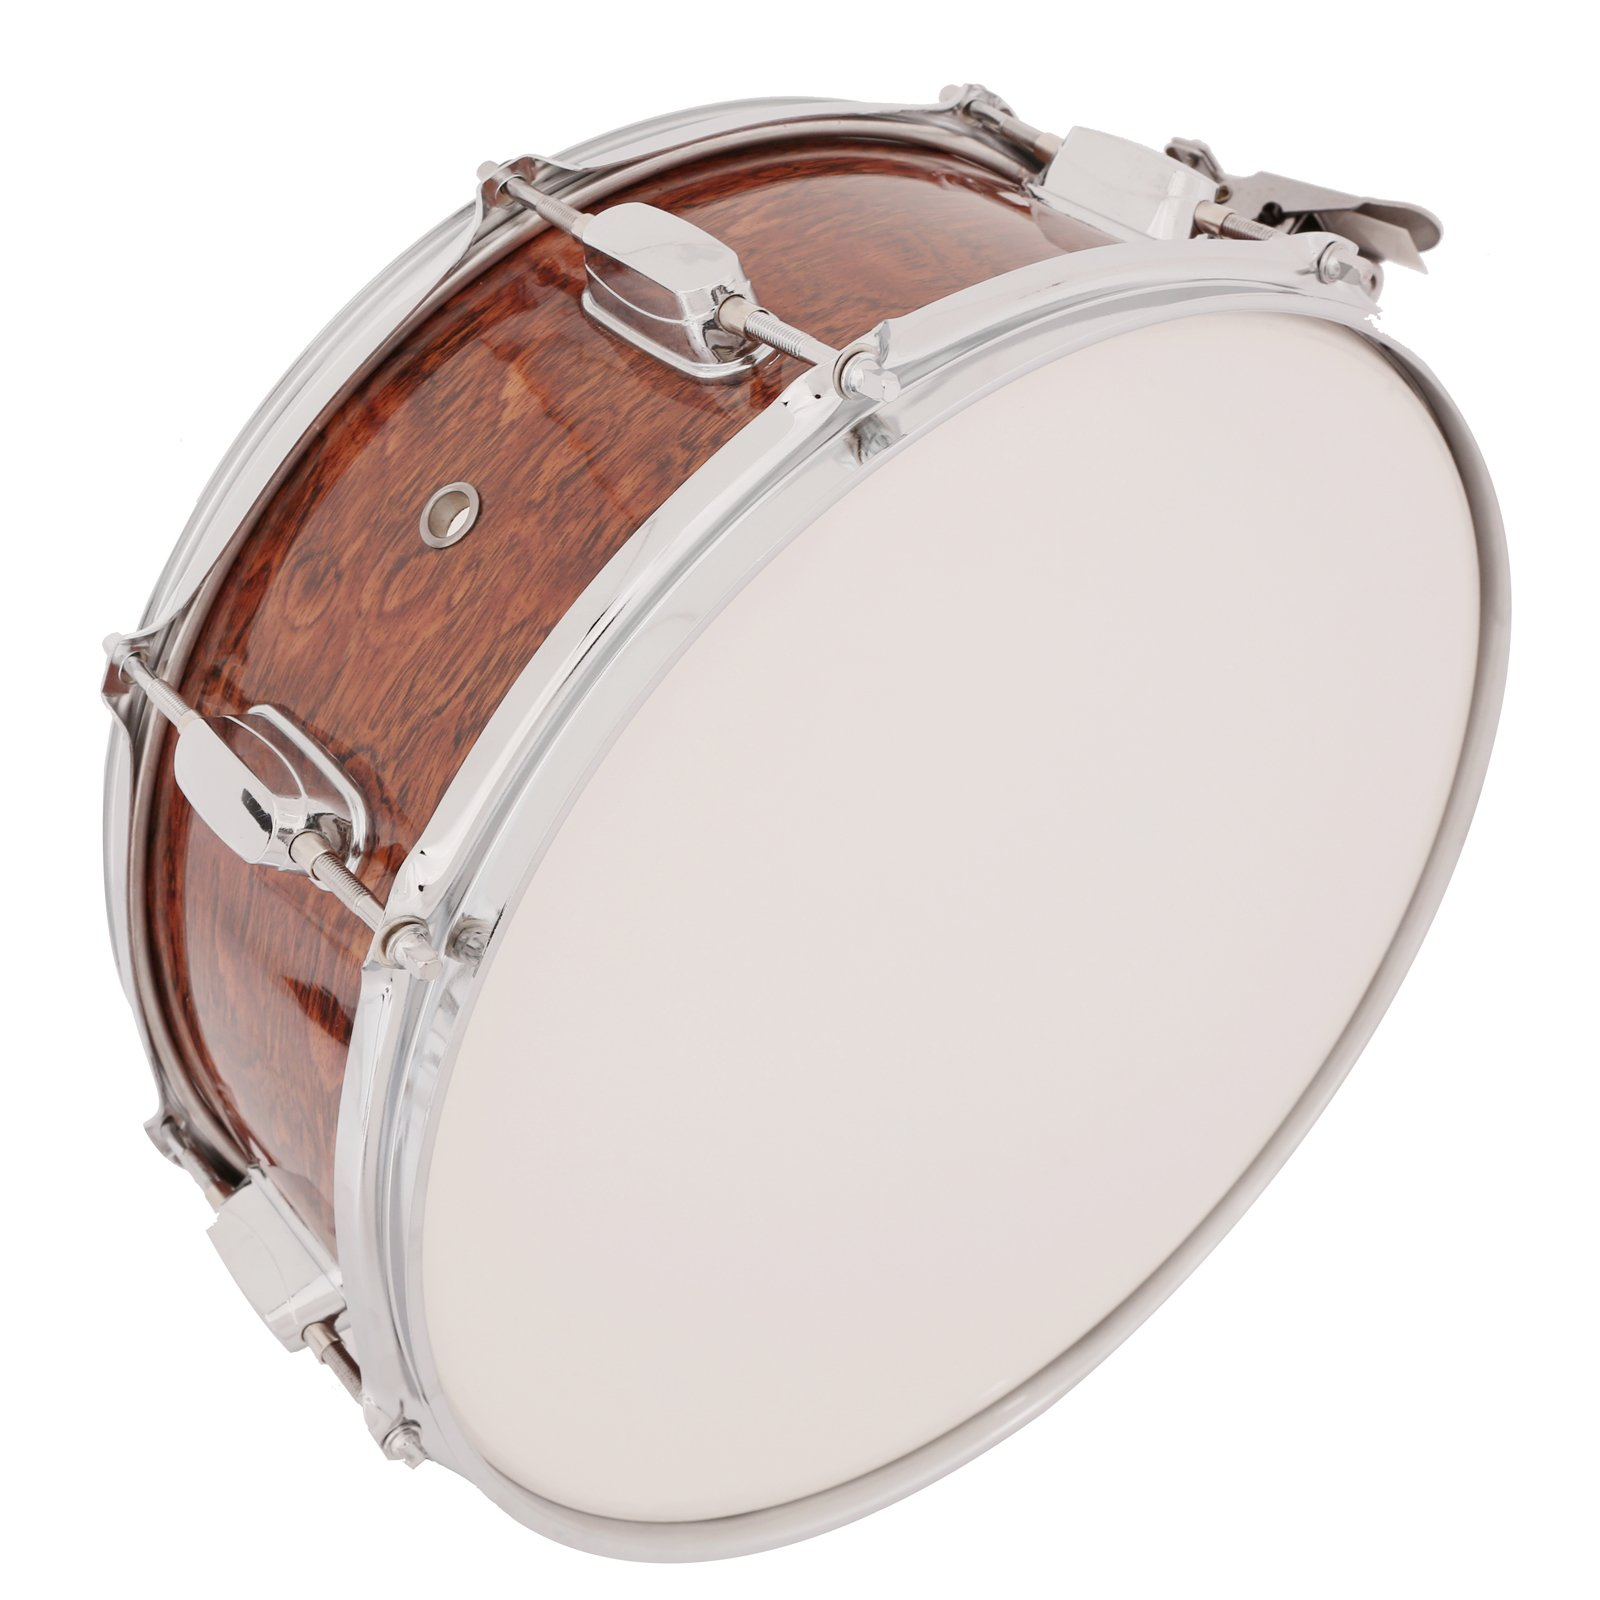 LAGRIMA Student Beginner Snare Drum W/Drum Key, Drumsticks and Strap|14x5.5 inch|Real Wood Shell|8 Metal Tuning Lugs by LAGRIMA (Image #3)